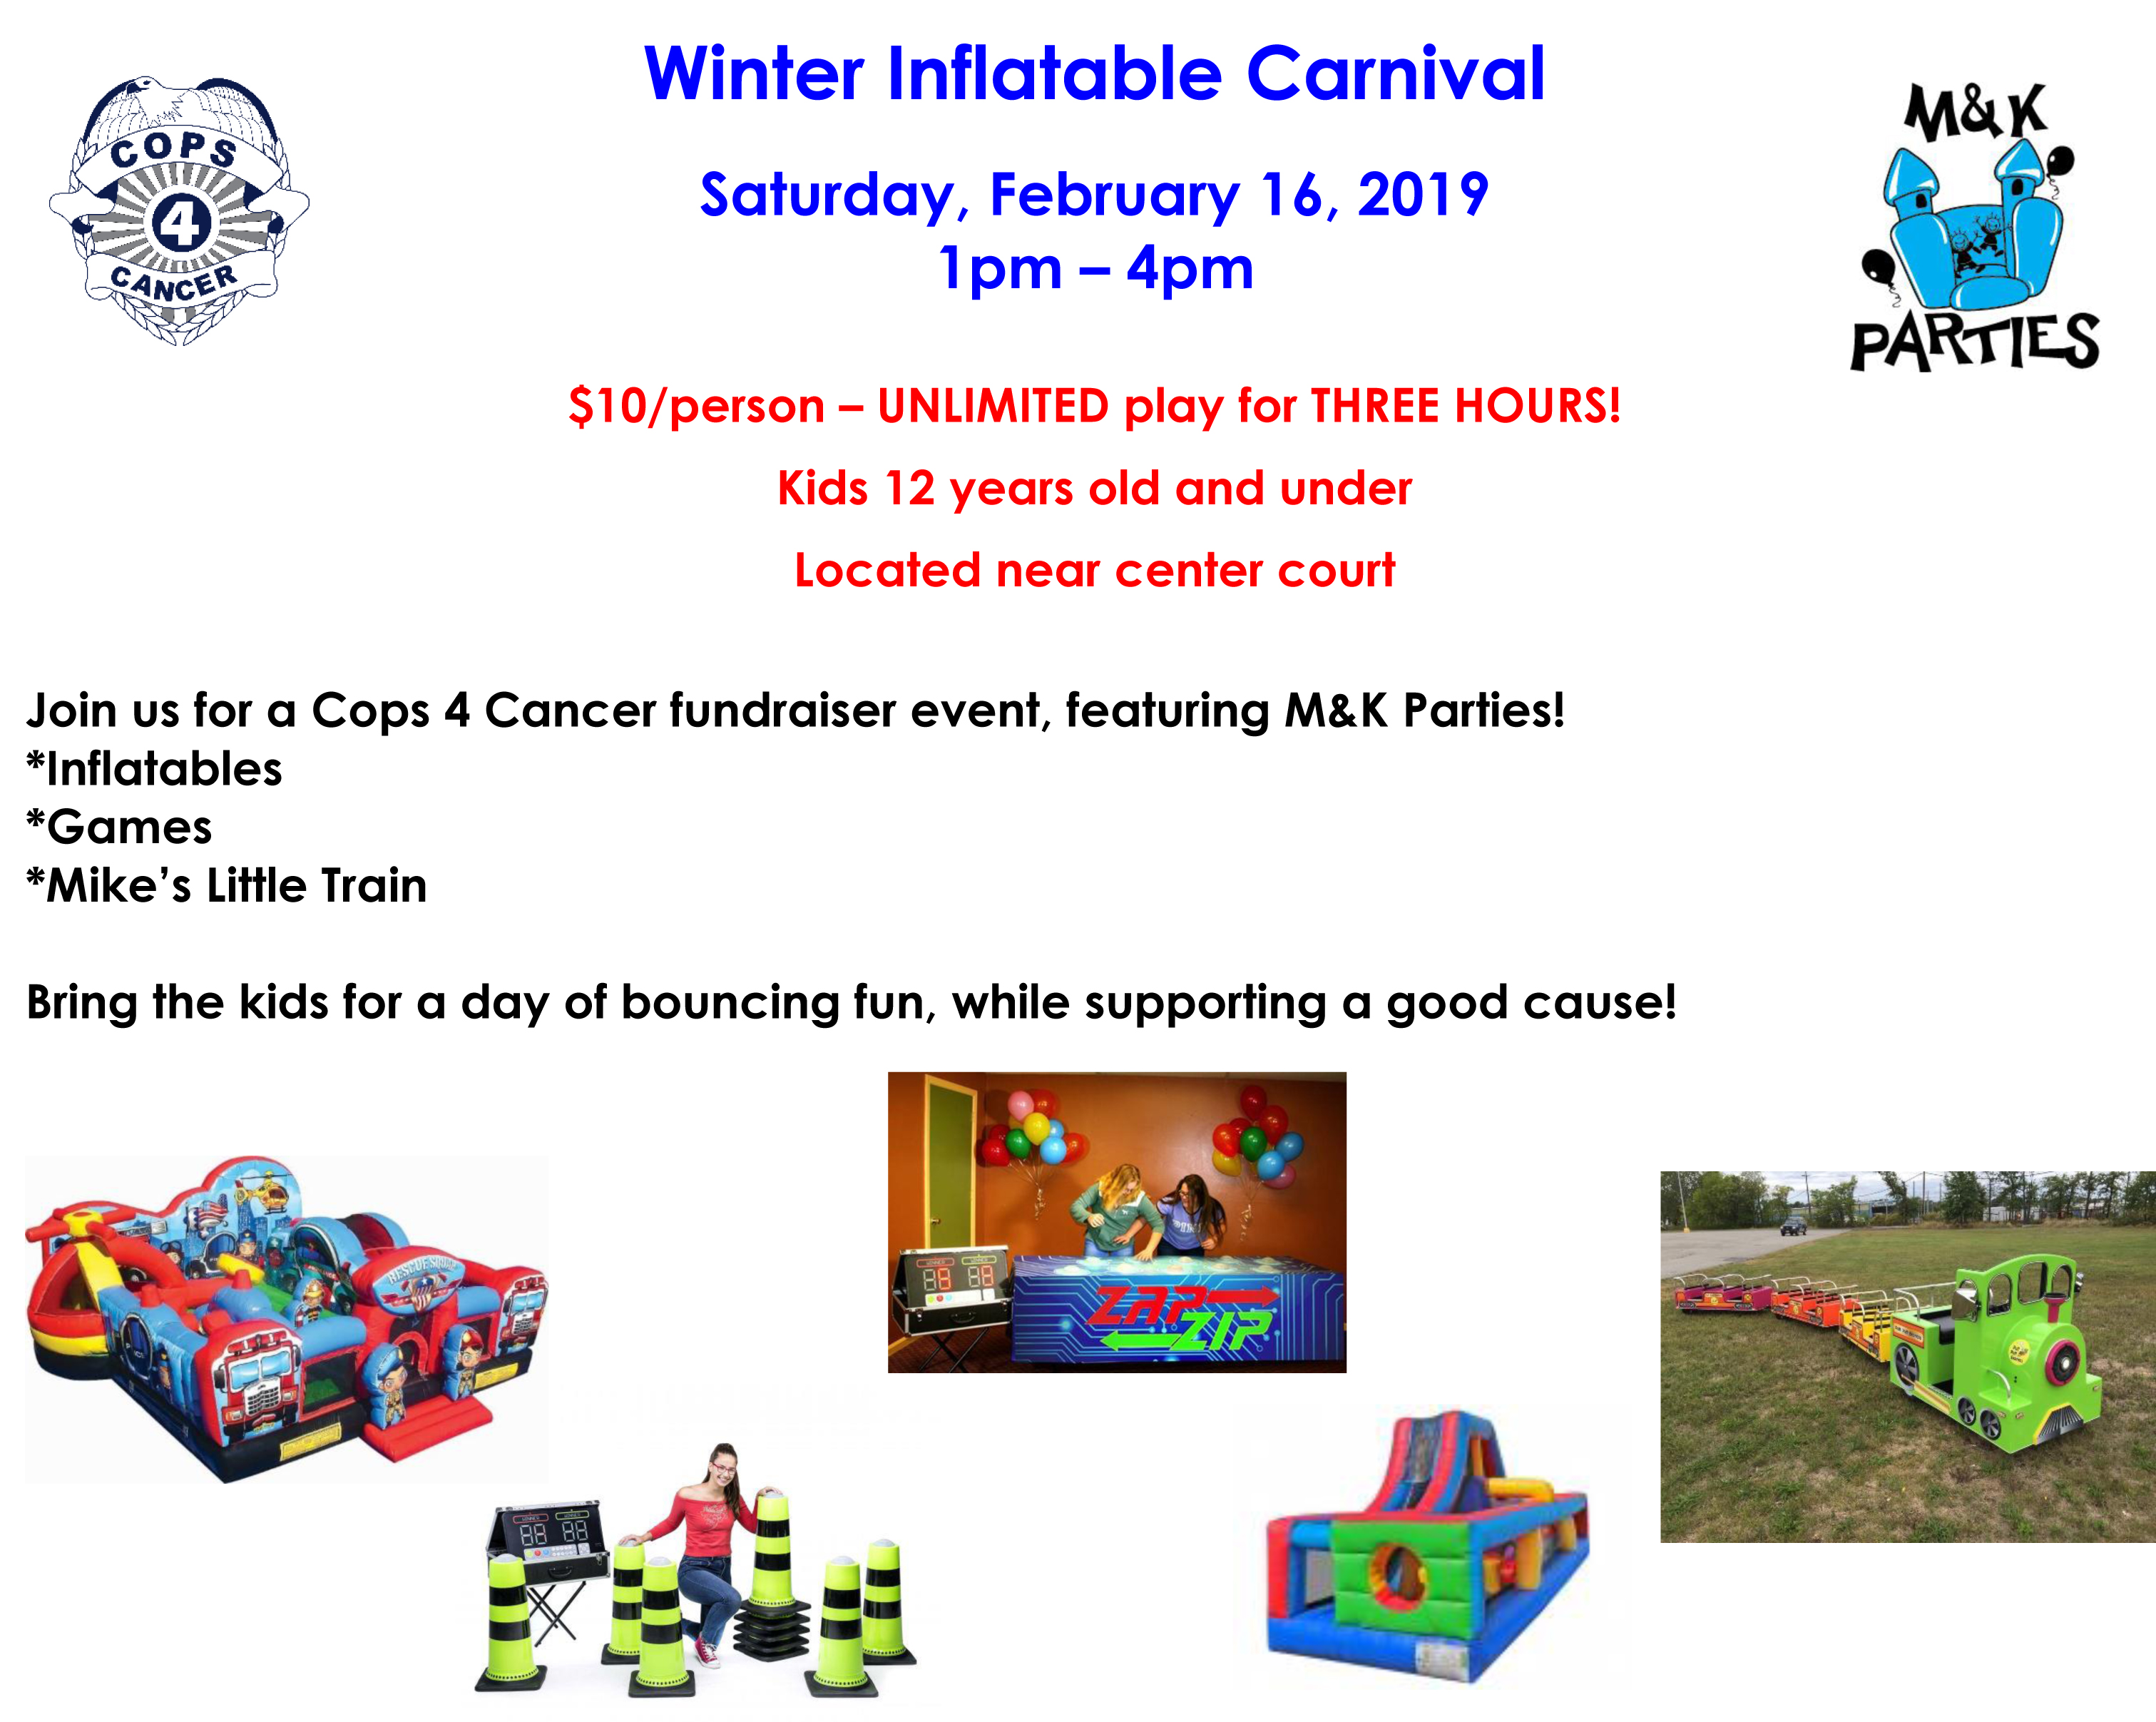 Winter inflatable carnival flyer